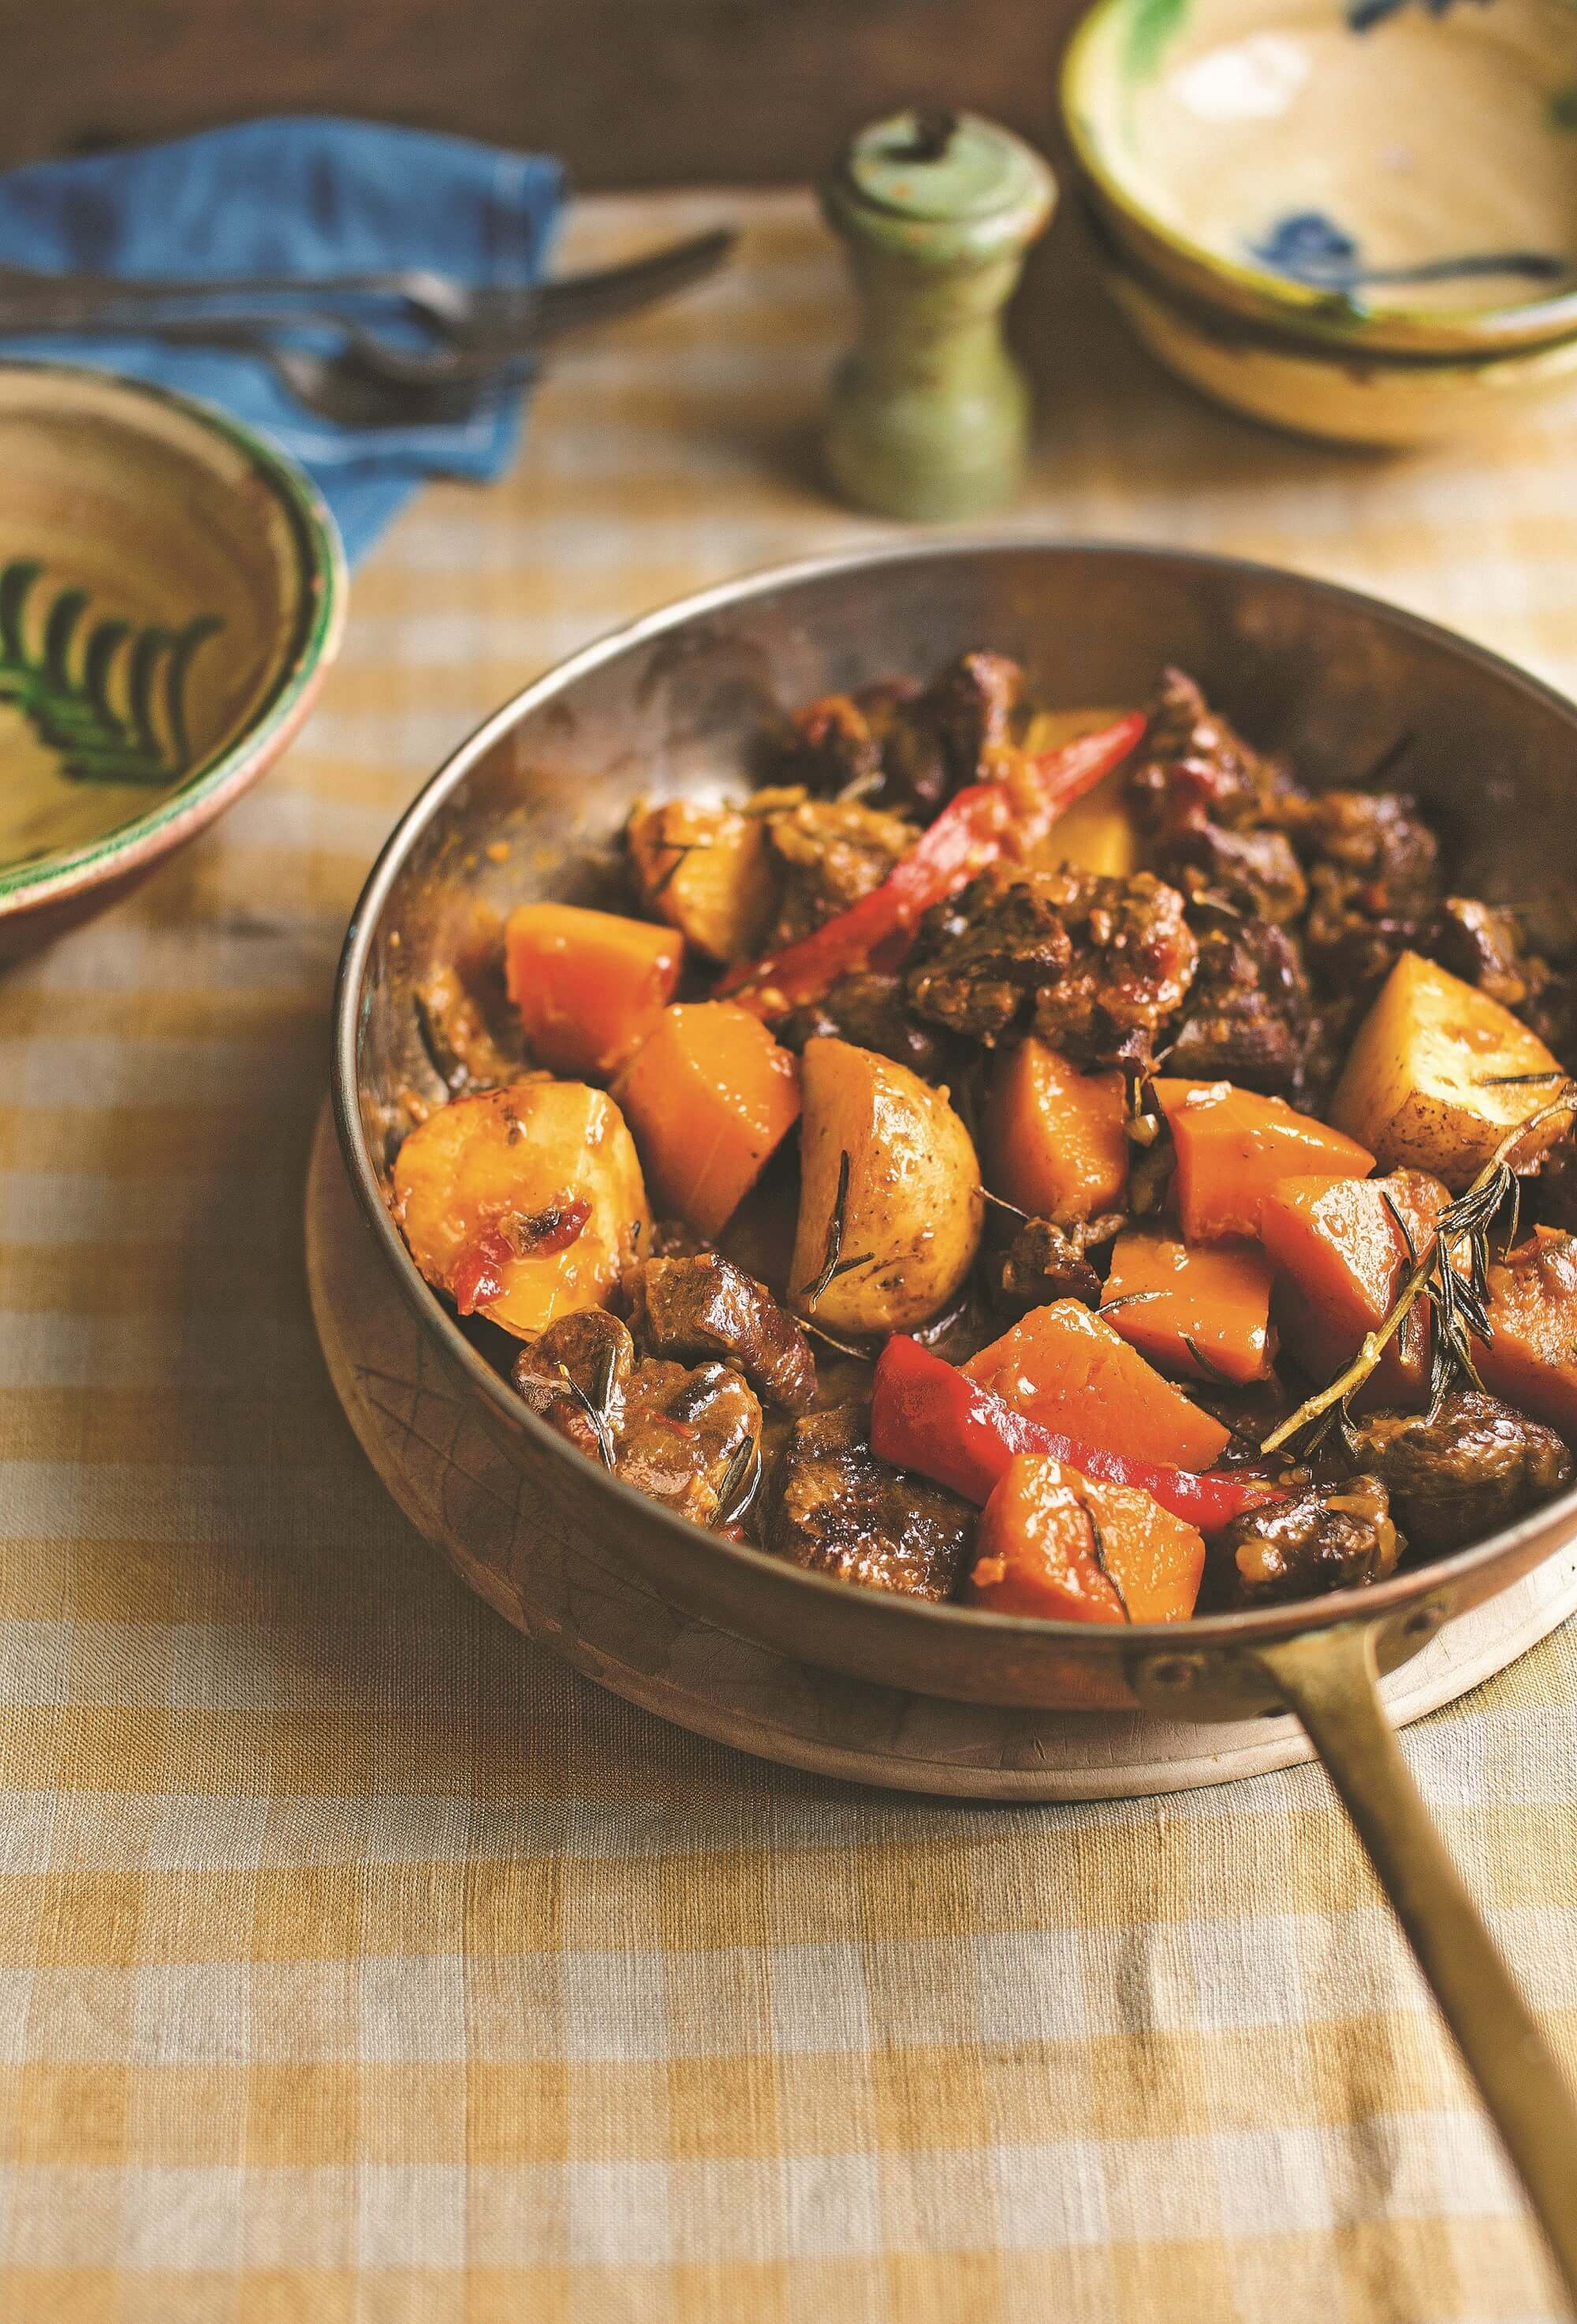 Lamb stew with butternut squash and saffron